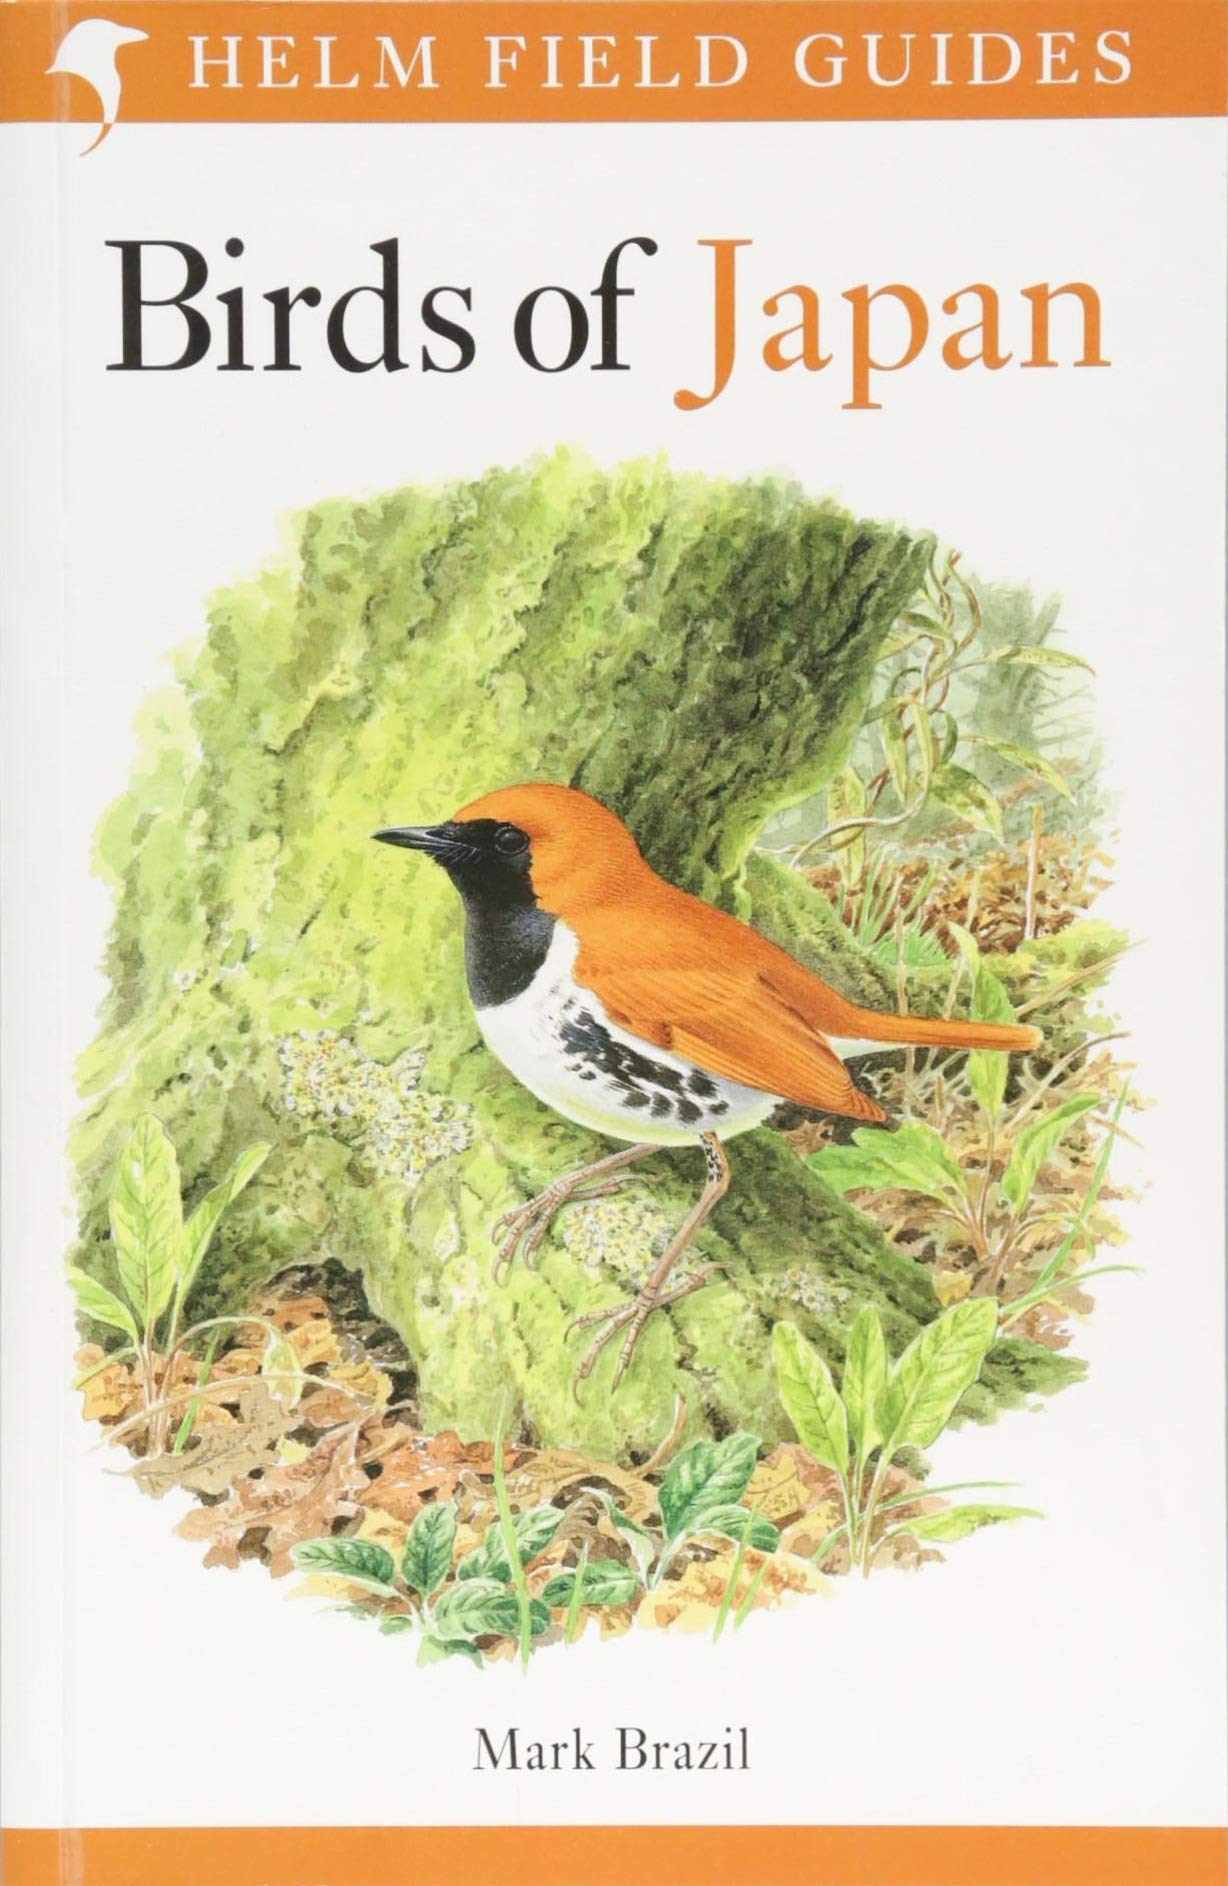 Image OfBirds Of Japan (Helm Field Guides)